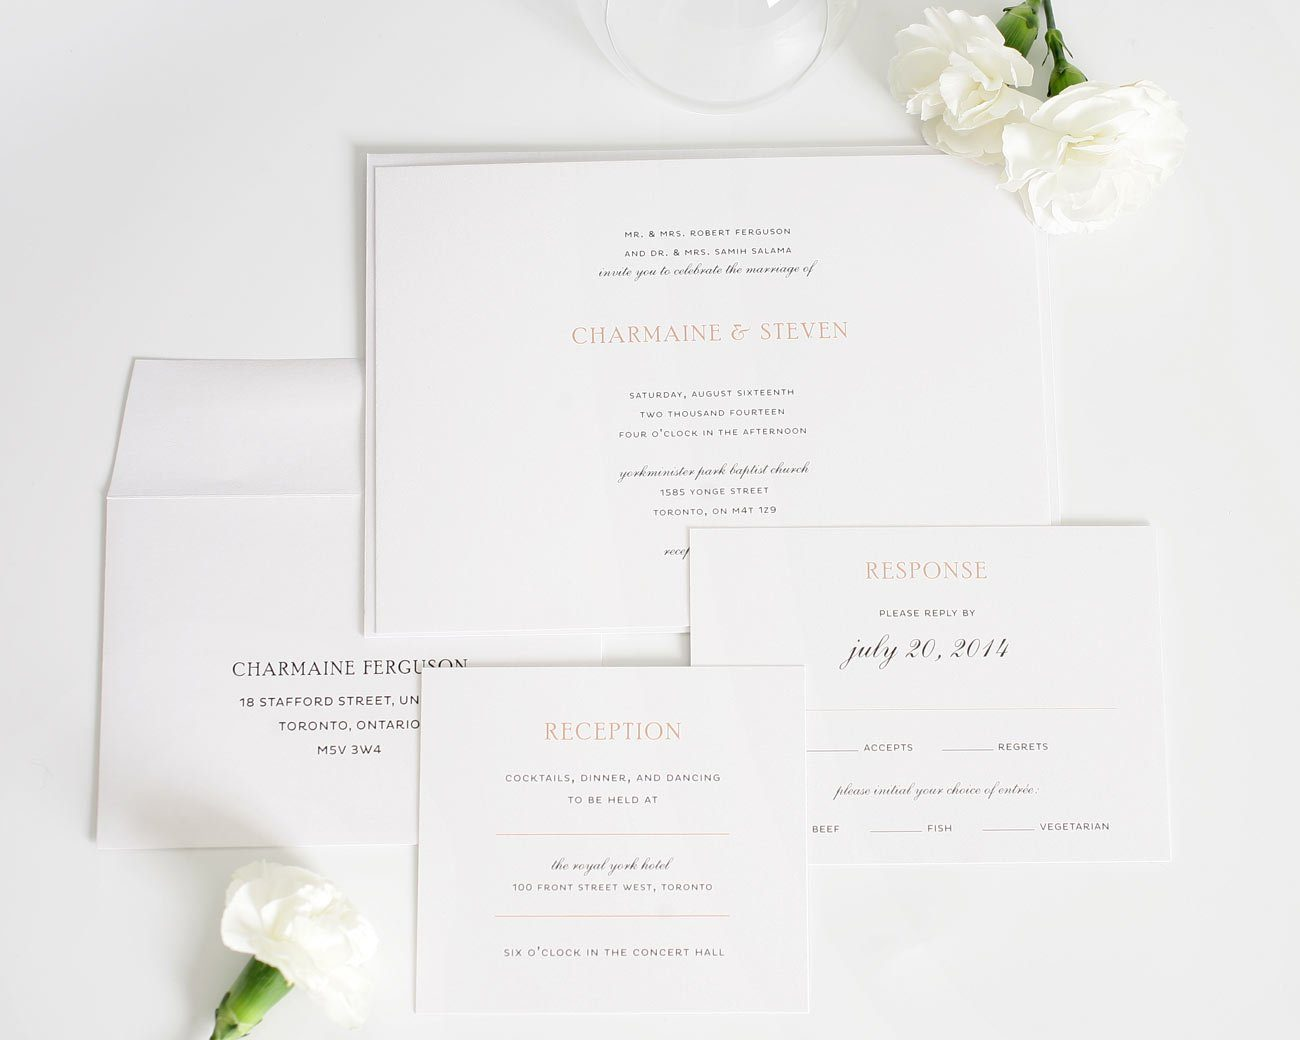 Simple and elegant wedding invitations with peach accents